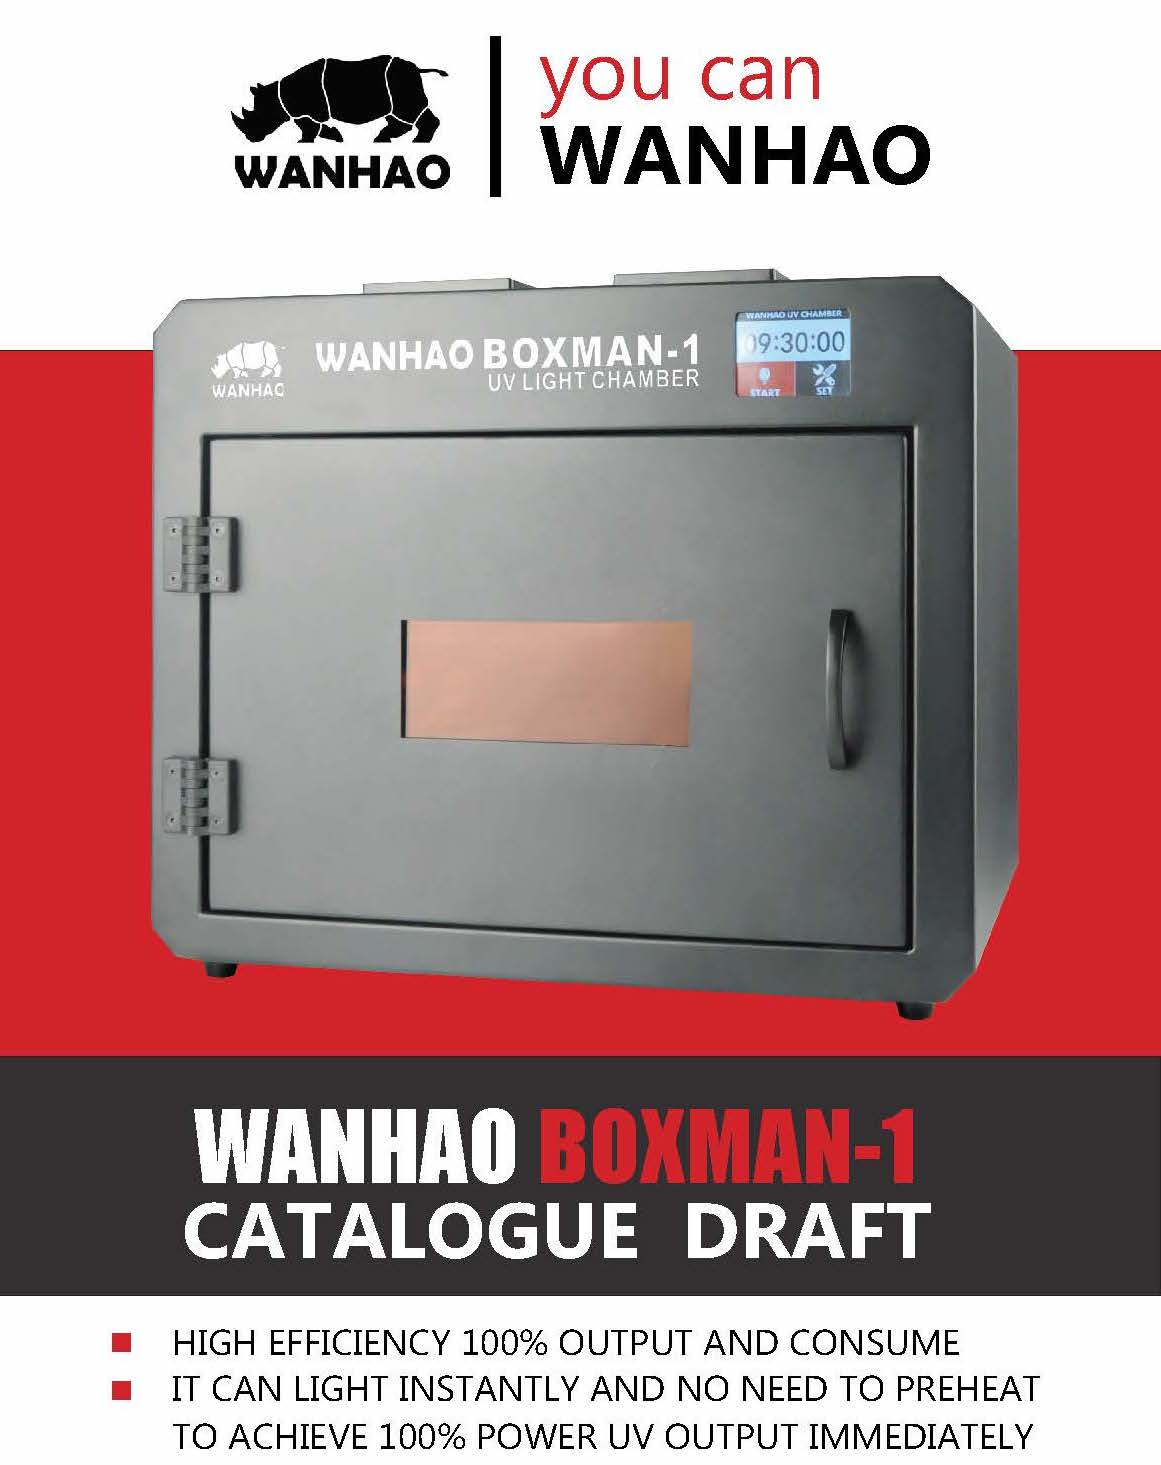 WANHAO BOXMAN - 1 - PROFESSIONAL CURING STATION FOR RESIN PRINTERS